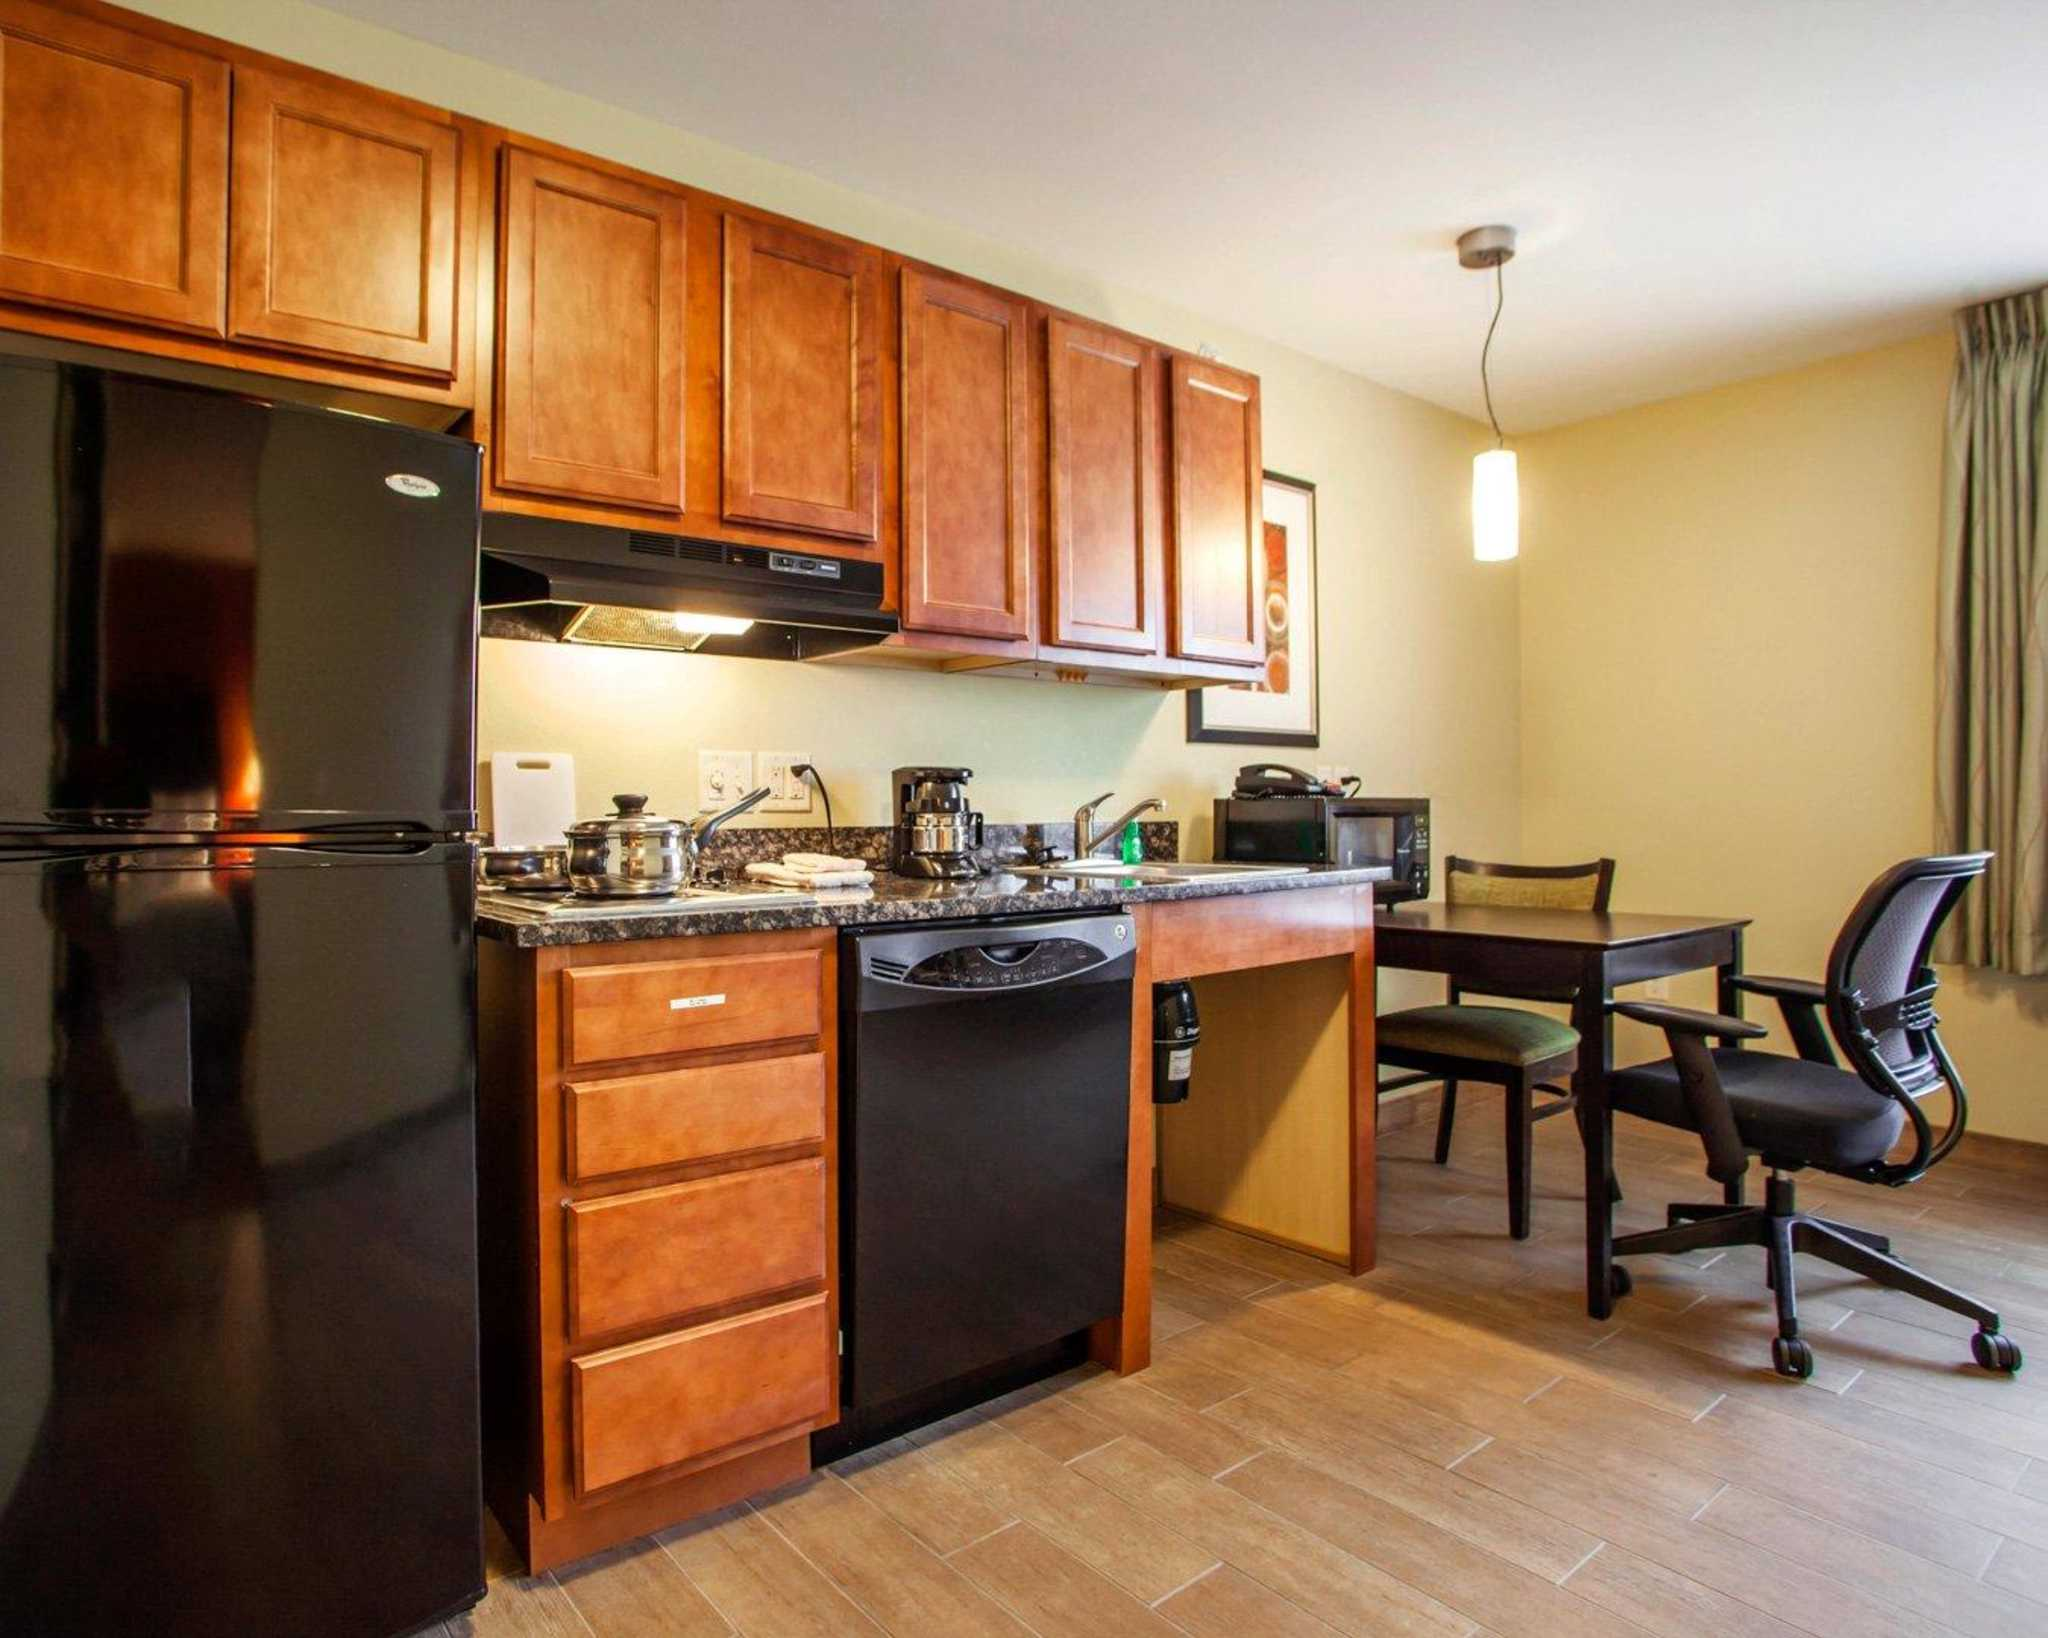 Suburban Extended Stay Hotel Coupons Near Me In Cedar Falls 8coupons